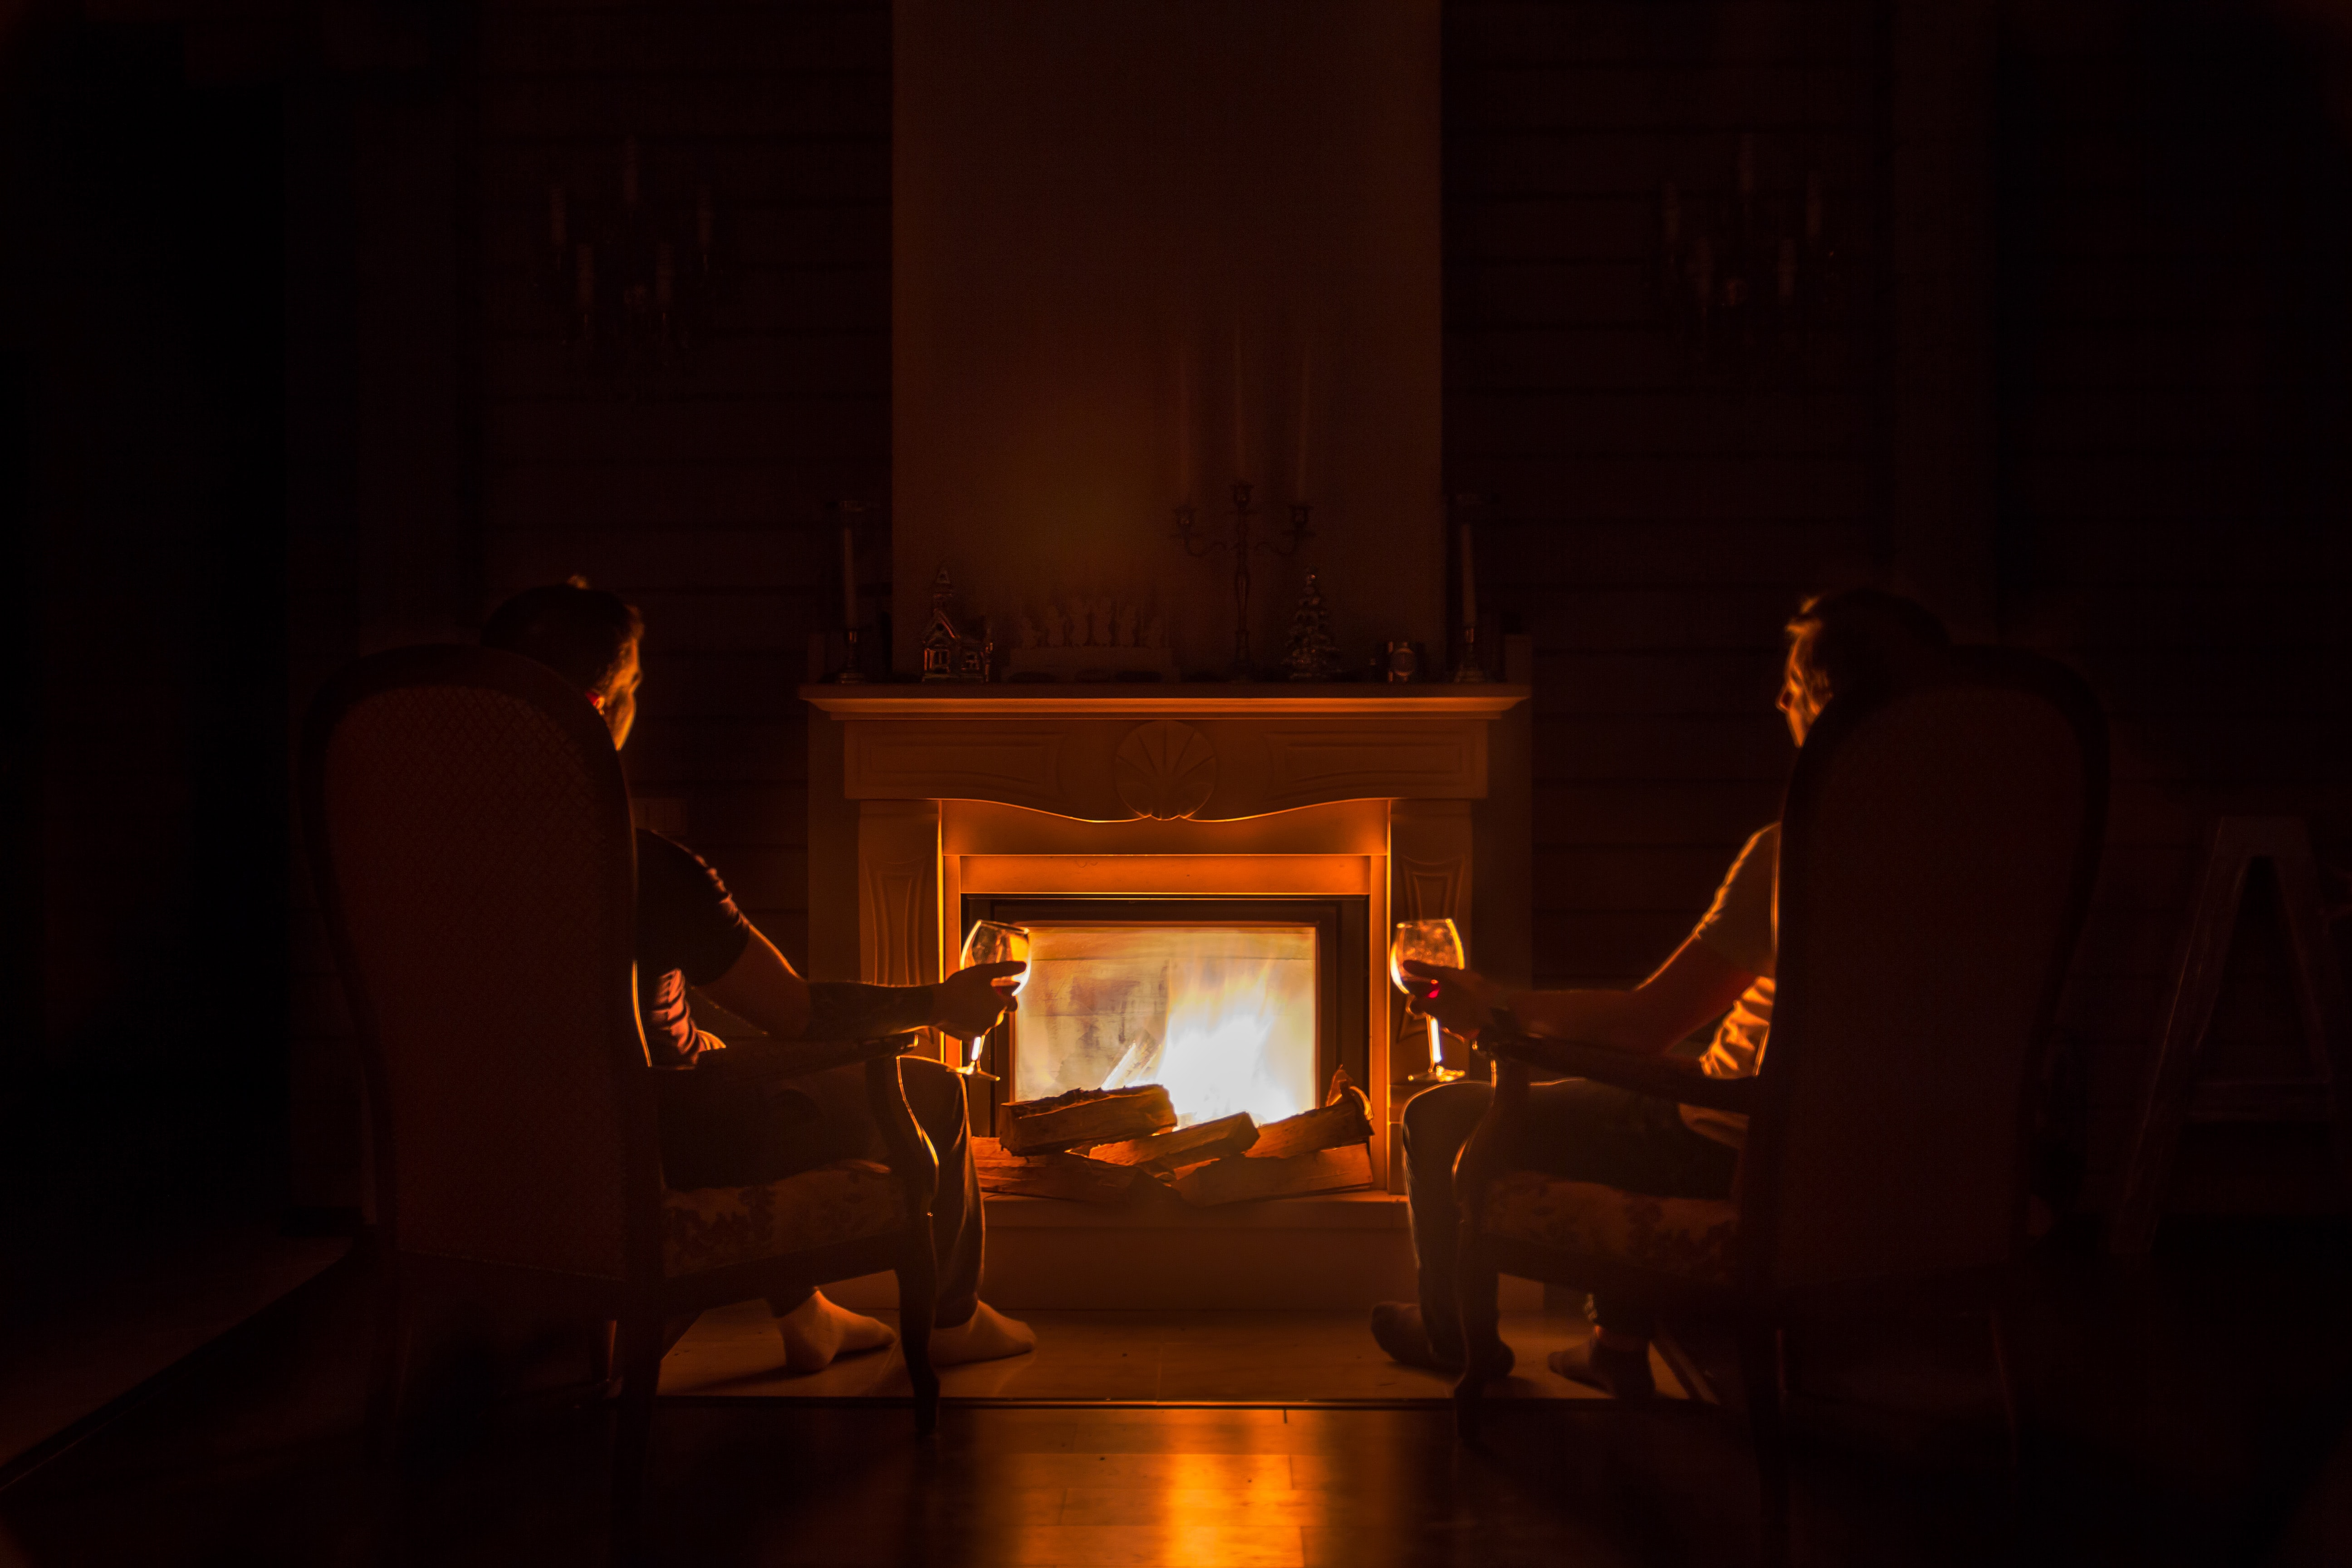 two people sitting in front of fireplace